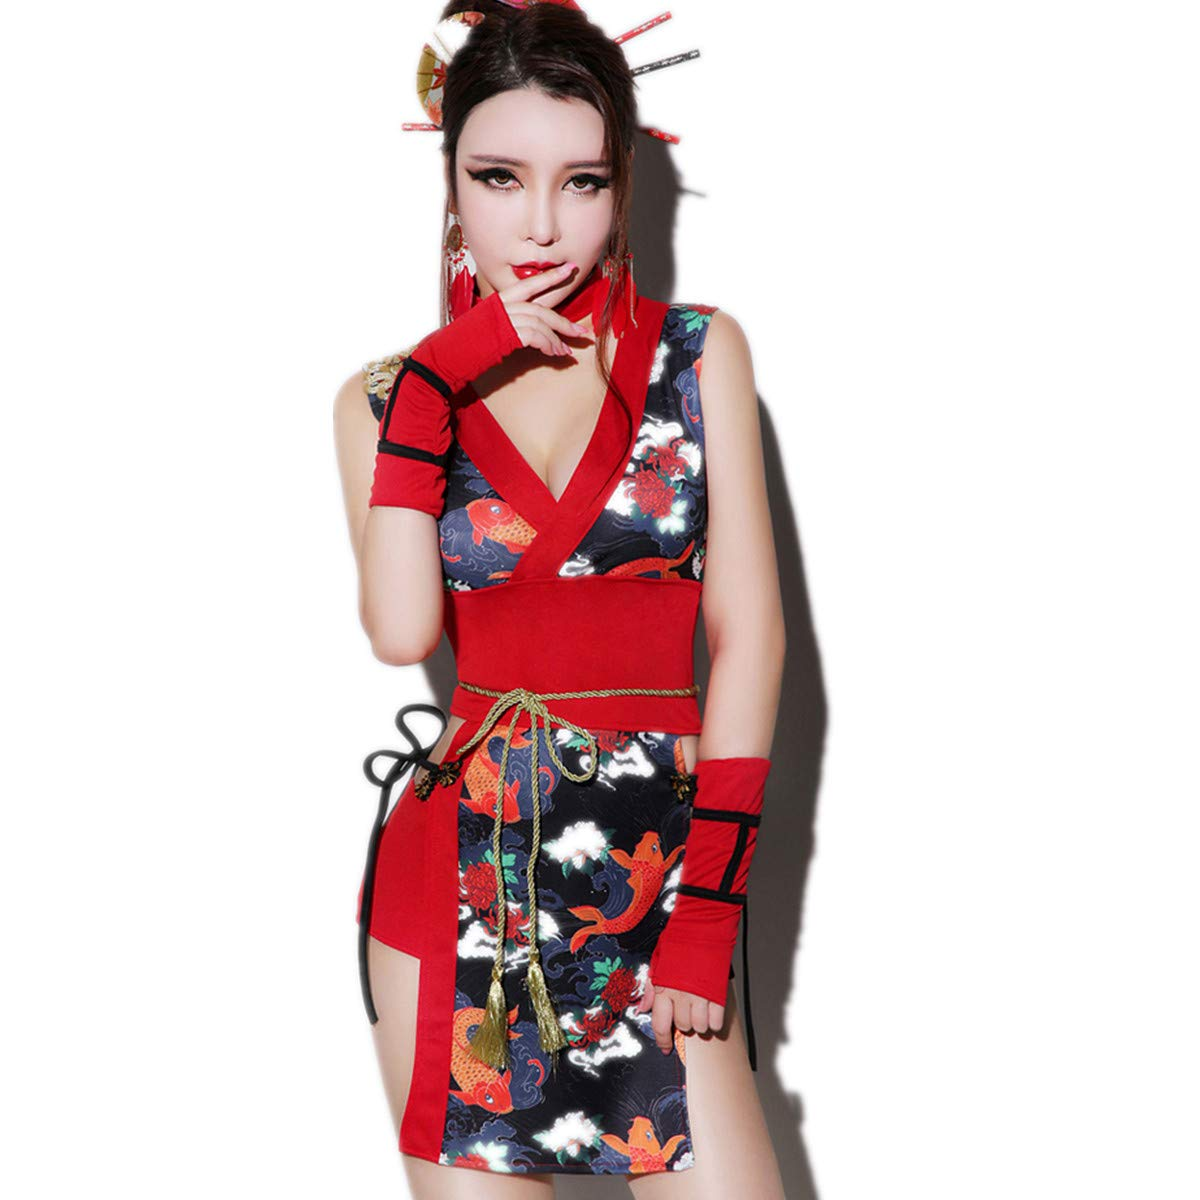 76e44183f TK-show Christmas retro dj female singer cheongsam ds costumes sexy adult  collar dance costume cosplay geisha clothing M code: Amazon.co.uk: Kitchen  & Home